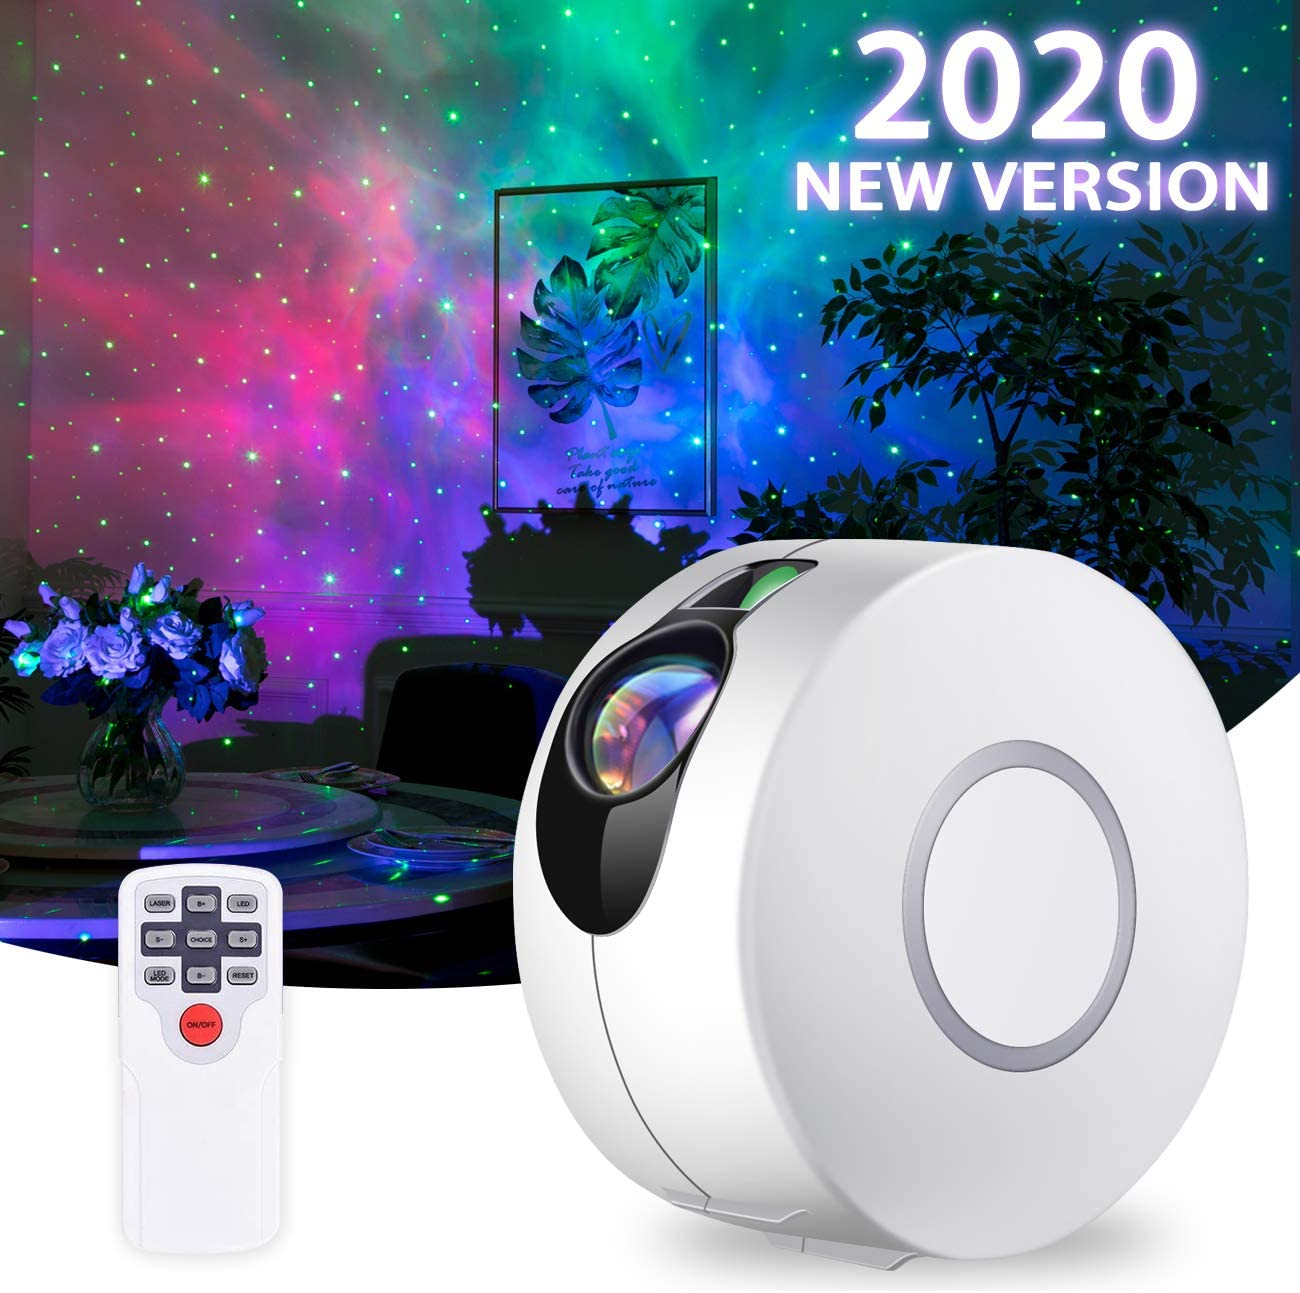 Star Projector, Galaxy Projector with Led Nebula Cloud,Star Light Projector with Remote Control for Kids Adults Bedroom/Party and Home Theatre